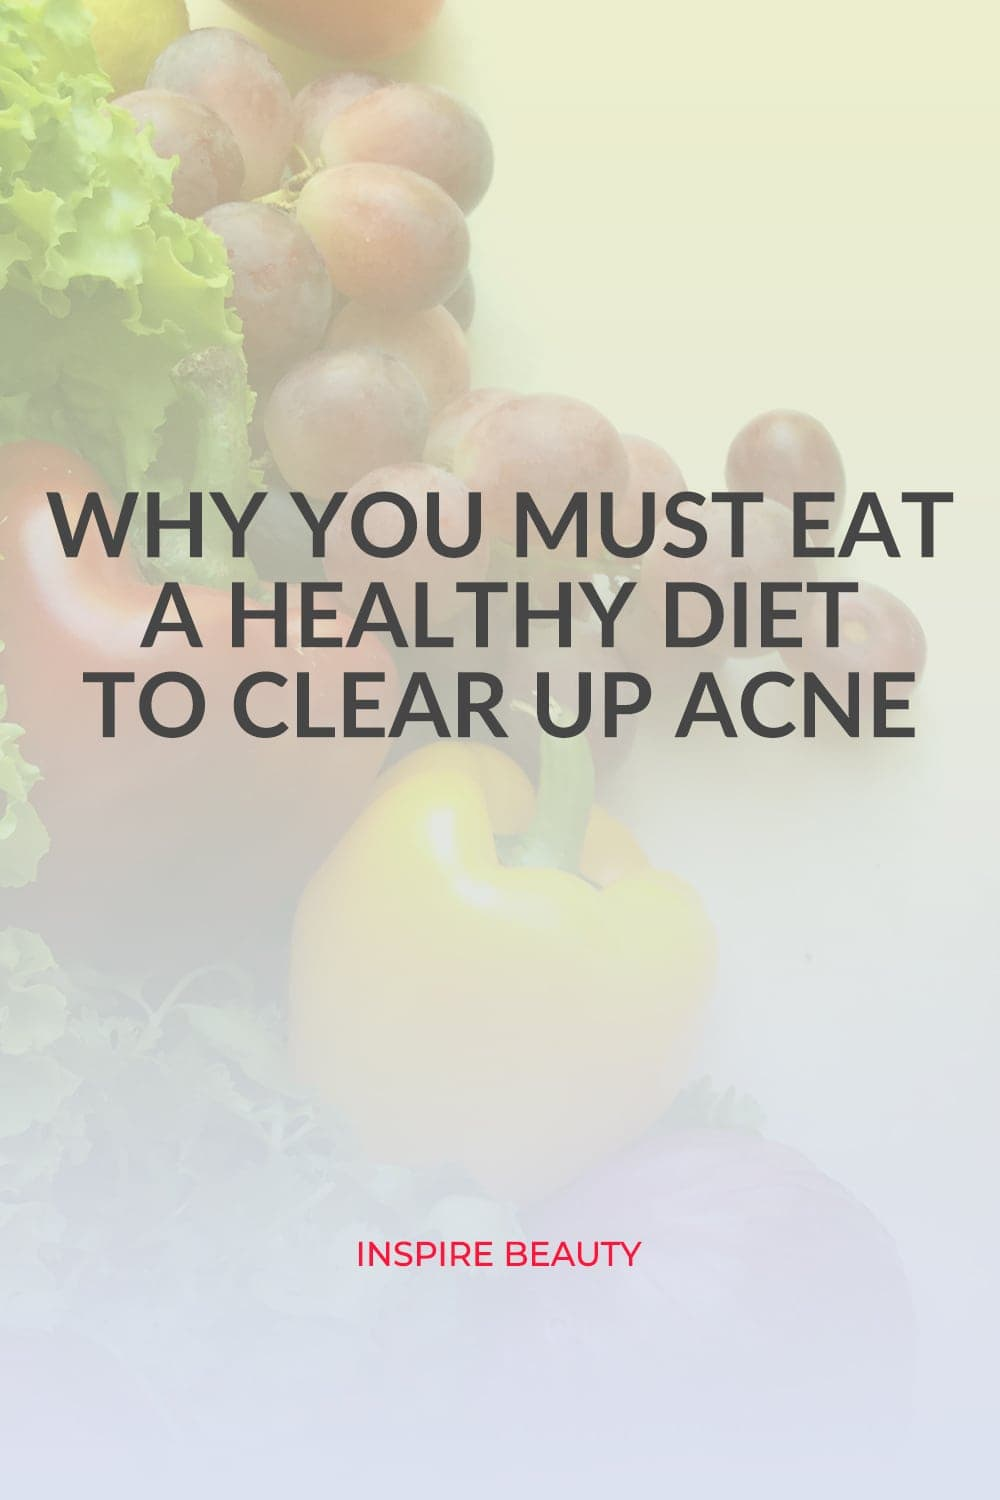 Why eating a healthy diet is so important for clearing up breakouts and acne